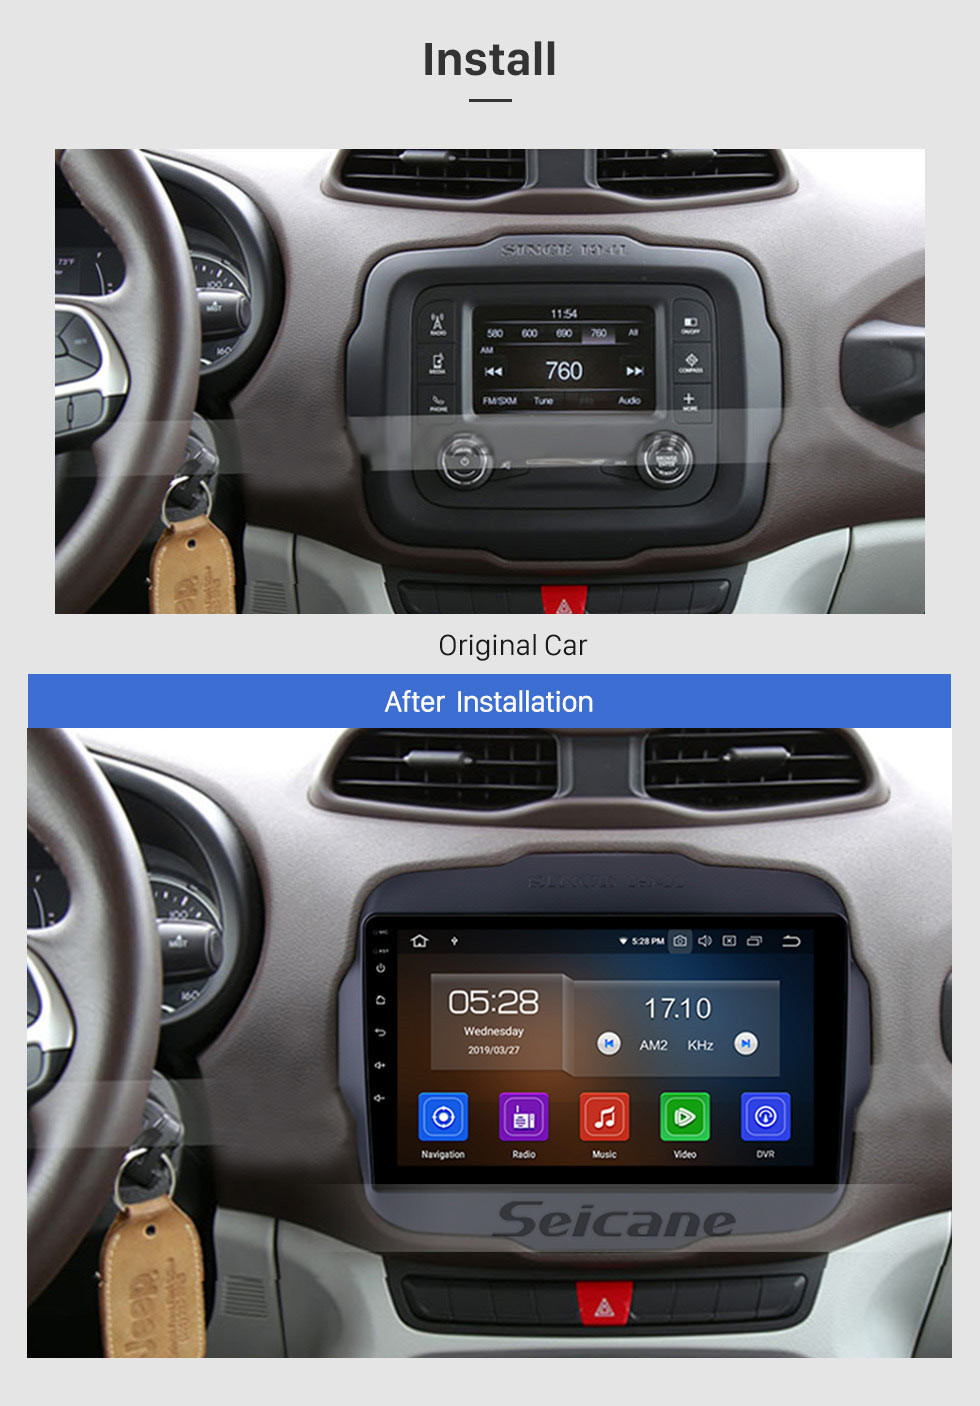 Seicane 9 inch 2016 Jeep RENEGADE HD Touch Screen Android 10.0 Radio GPS Navigation System Support 3G WIFI Bluetooth Steering Wheel Control DVR AUX OBD2 Rear Camera